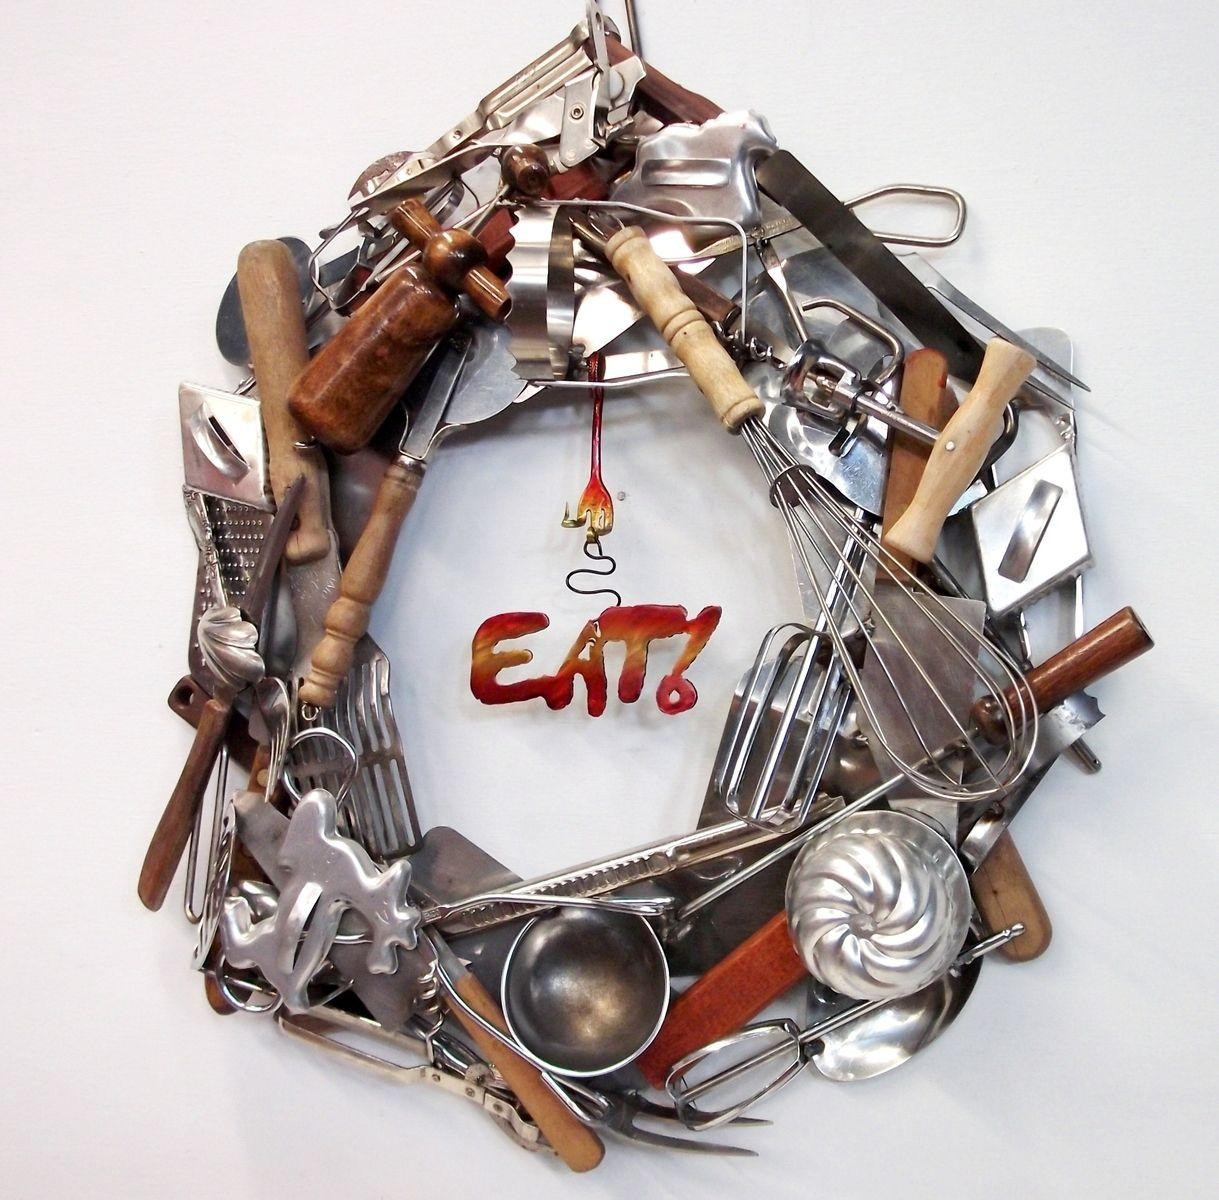 Handmade Home Decor, Custom Wreaths, Wall Art $100 – 500, Recycled Within Recycled Wall Art (View 18 of 20)